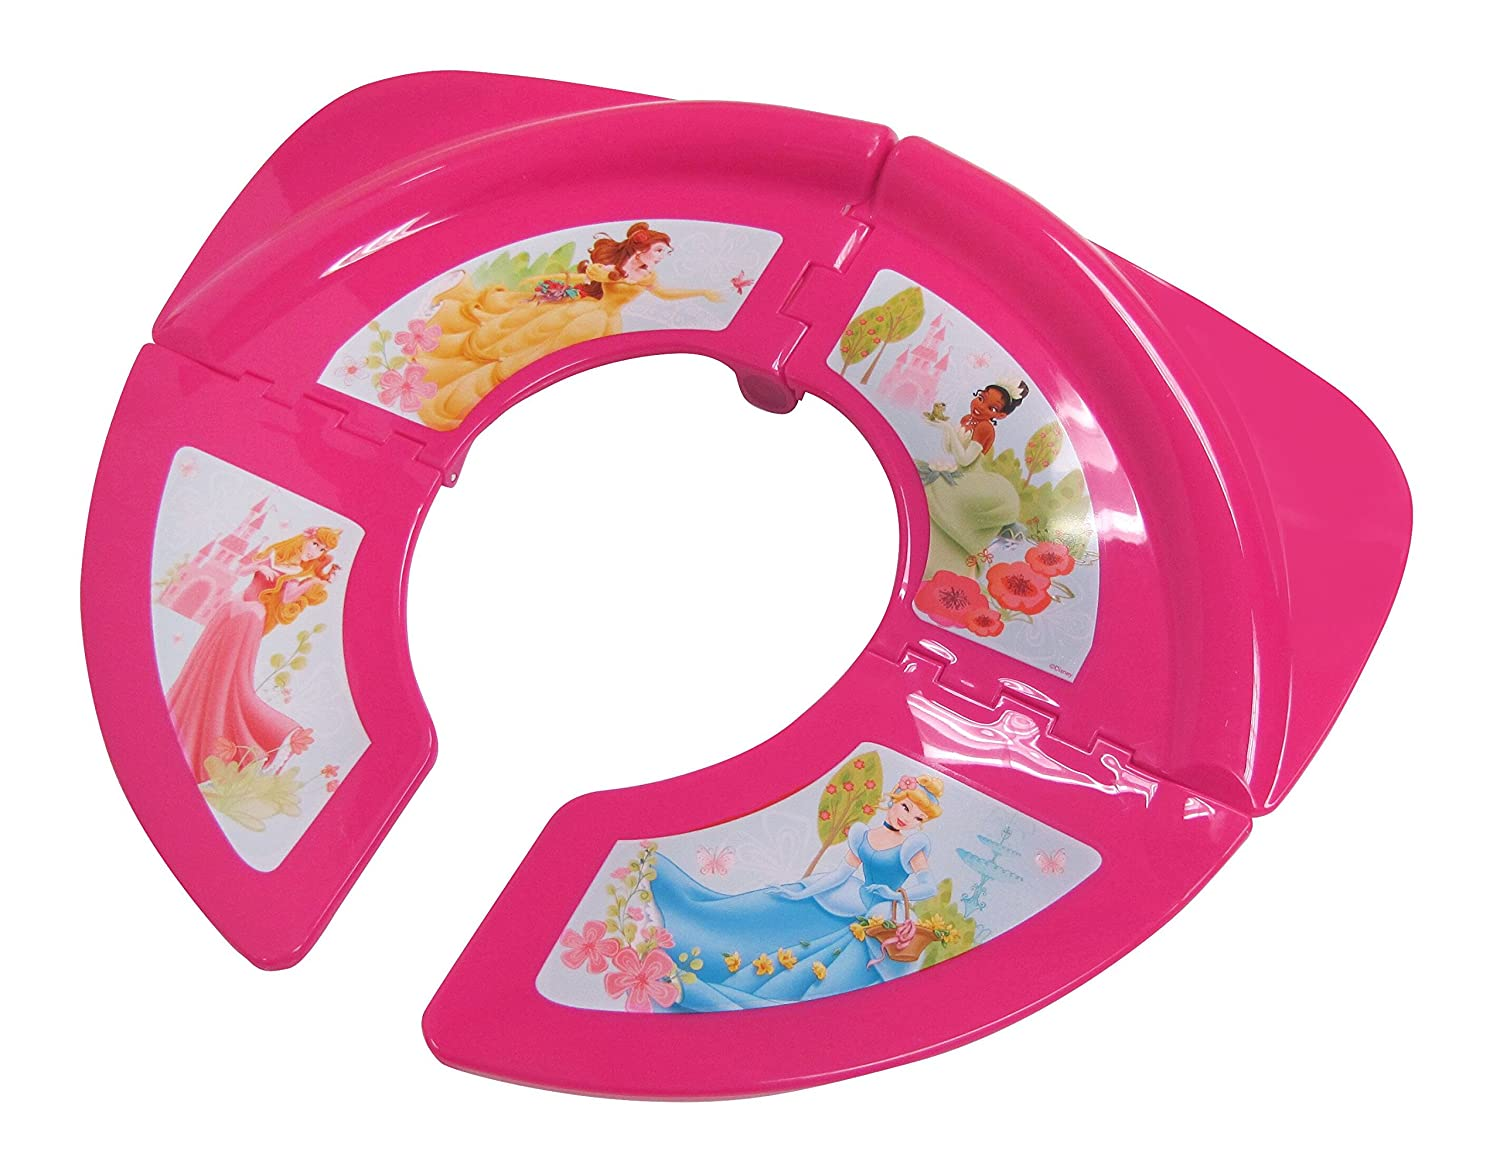 Disney Princess Folding Potty Seat 49153